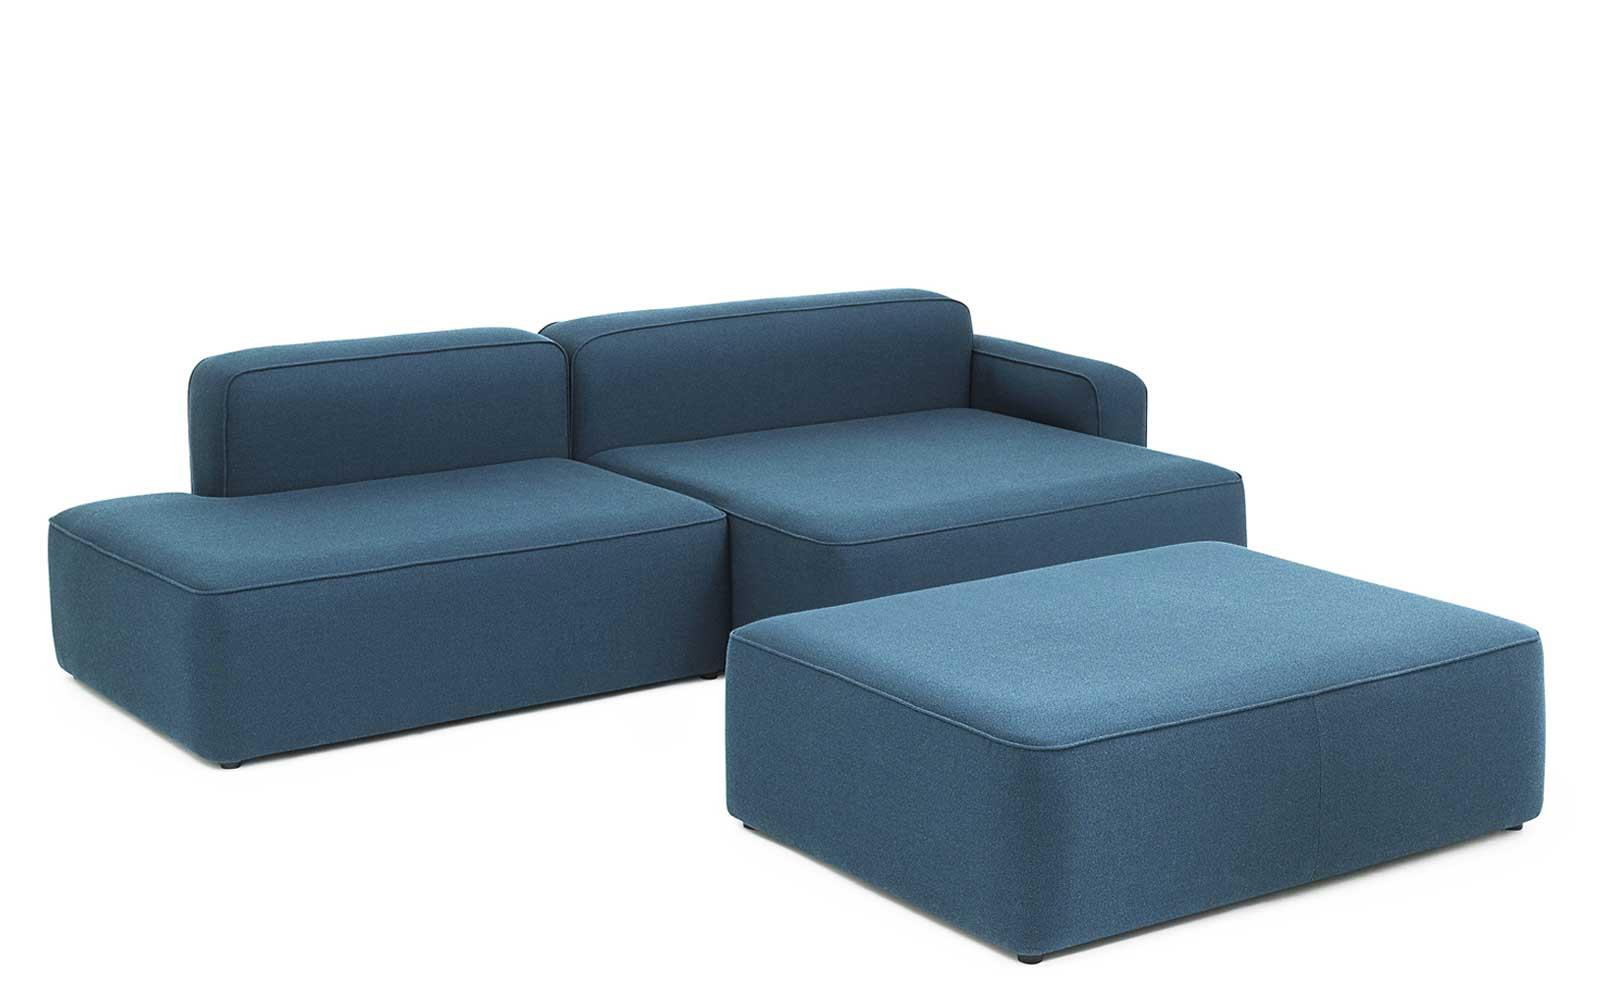 Rope Sofa Chaise Longue Right With Pouf Fame Hybrid